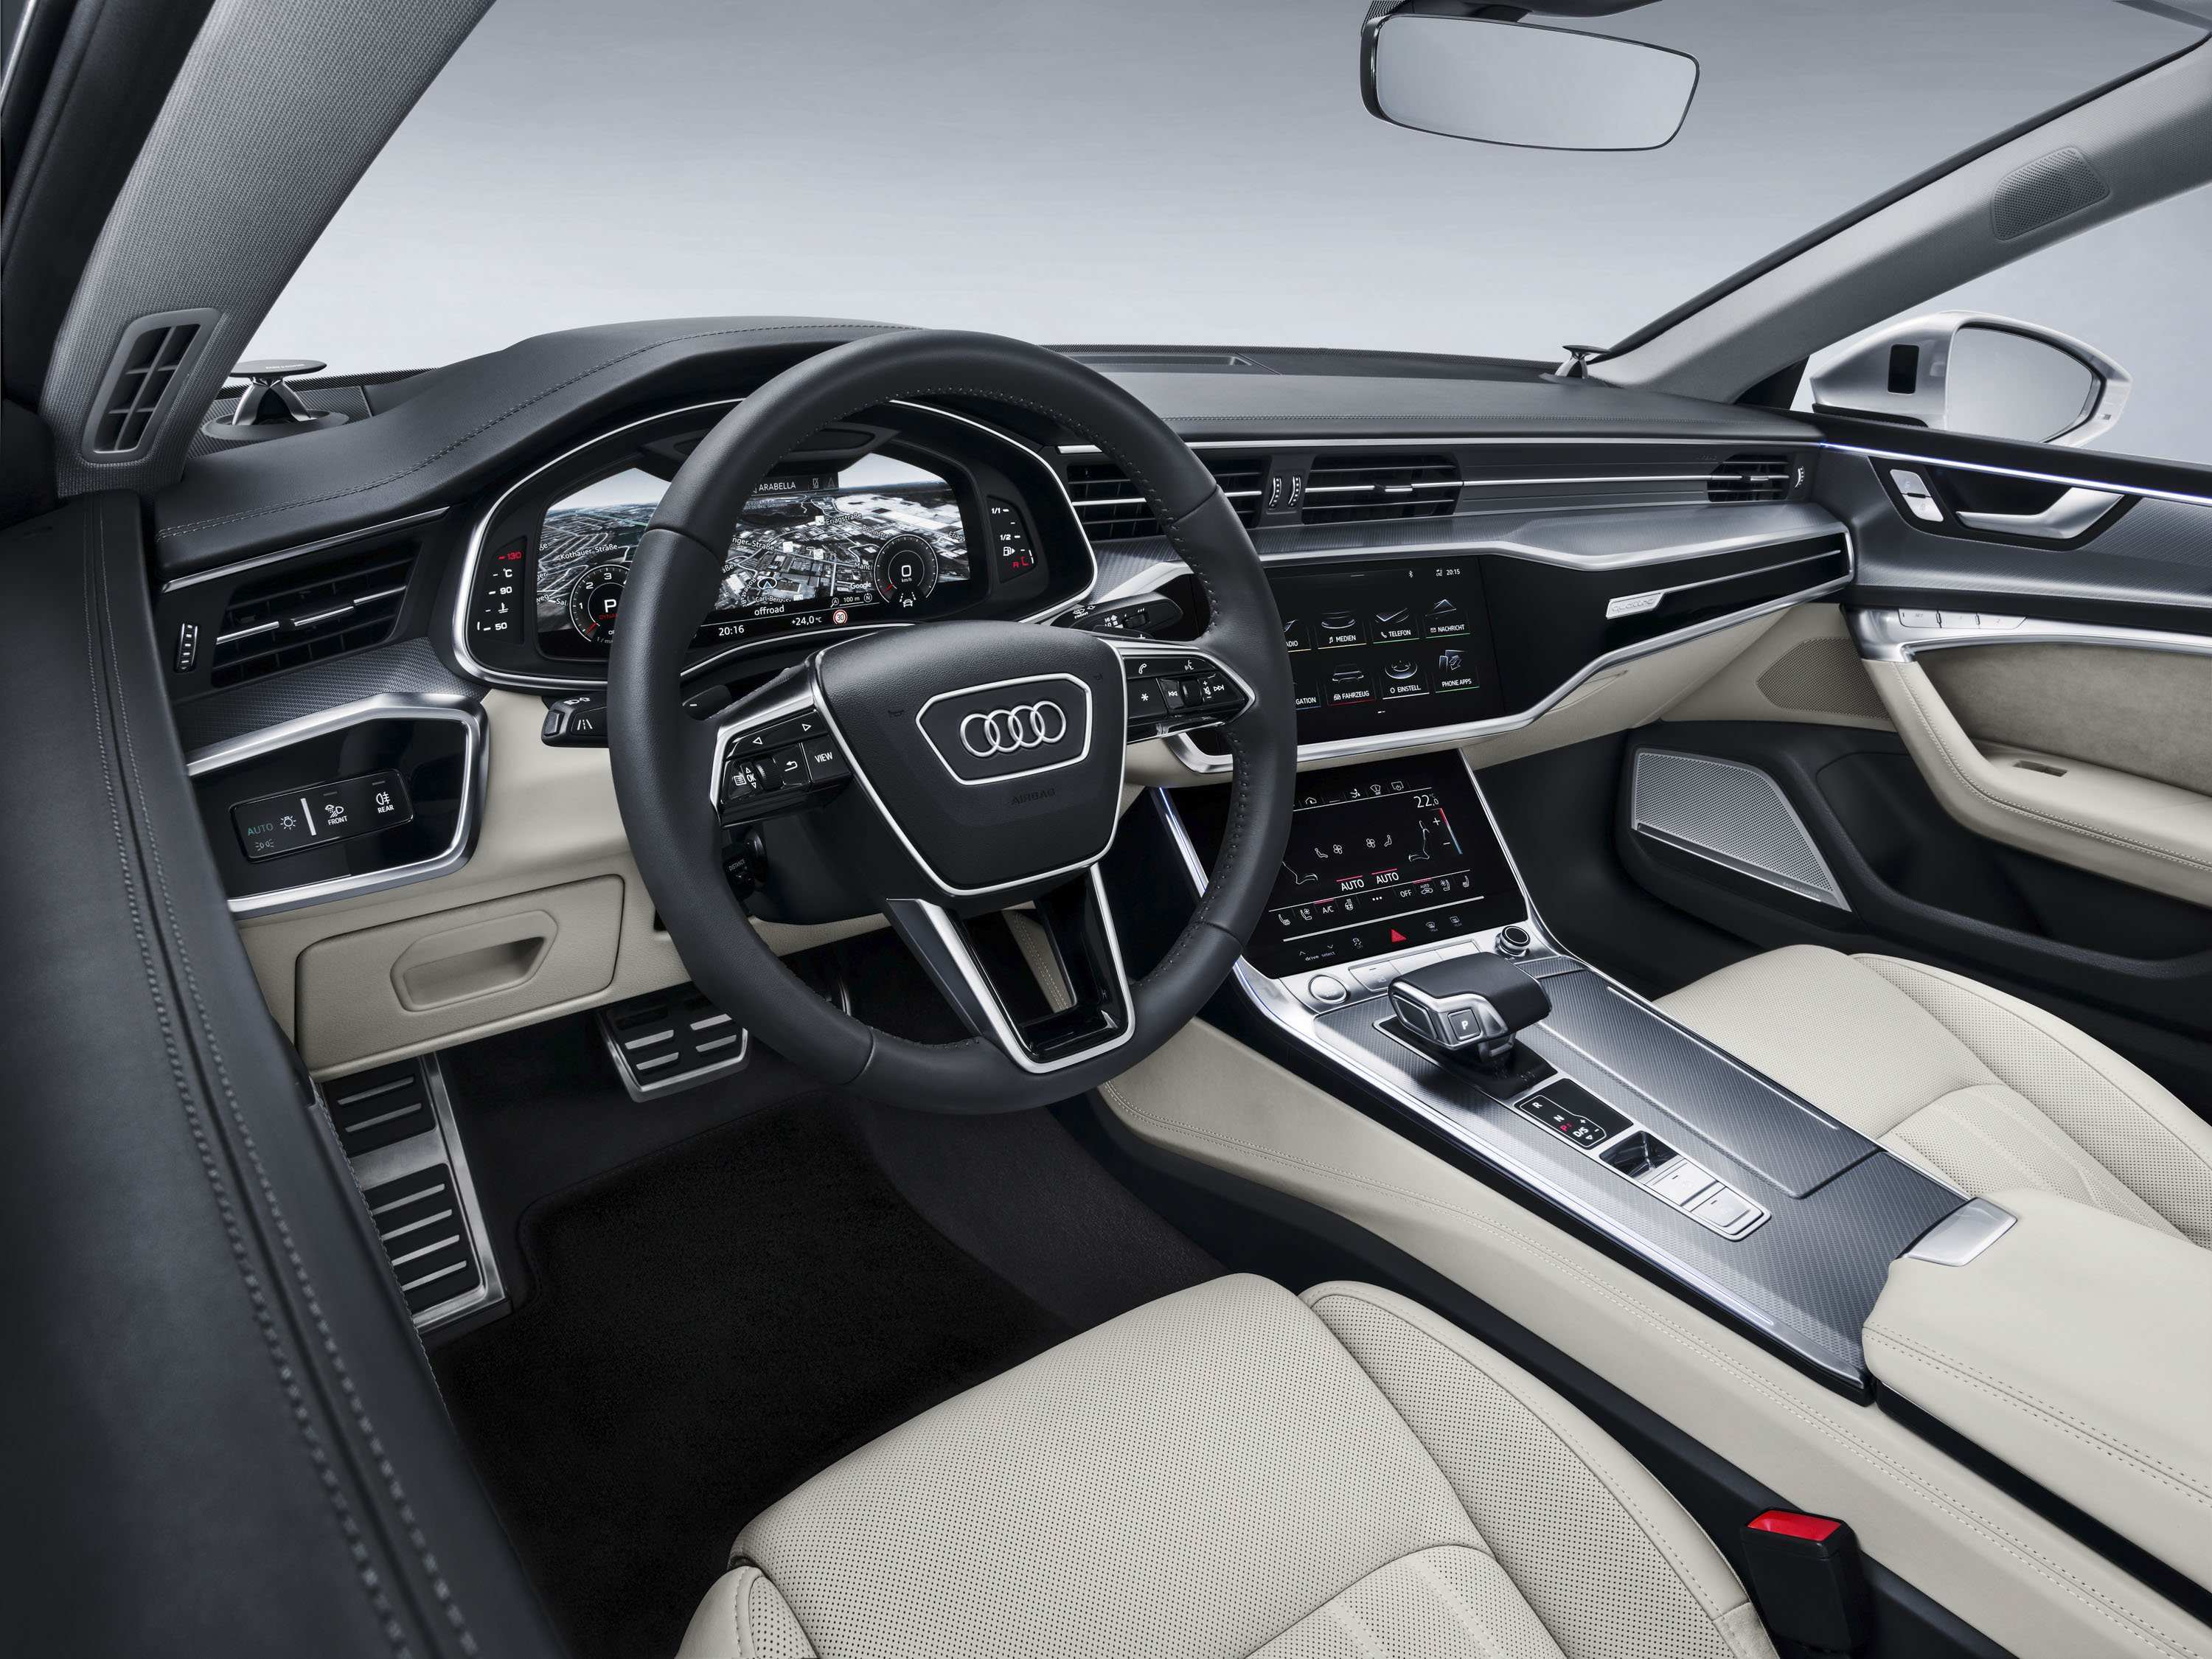 88 Best Review 2019 Audi A7 Msrp Spesification with 2019 Audi A7 Msrp